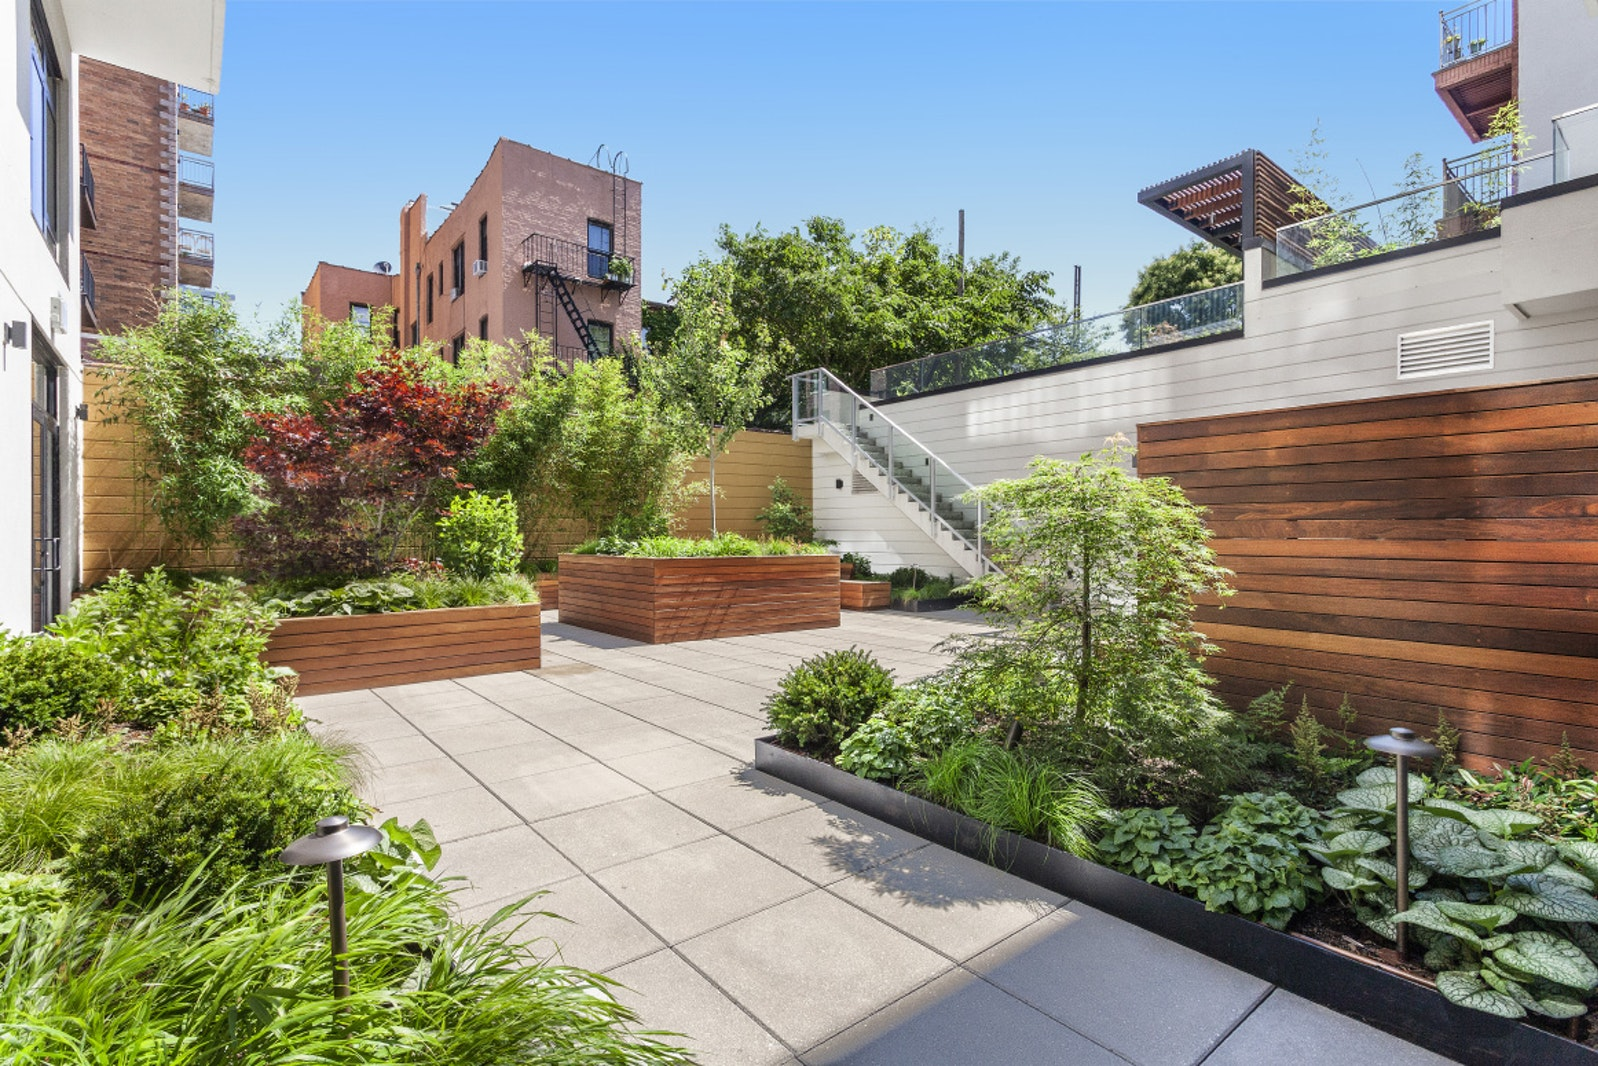 185 18th Street Ph1003, Greenwood, Brooklyn, NY, 11215, $1,995,000, Property For Sale, Halstead Real Estate, Photo 6